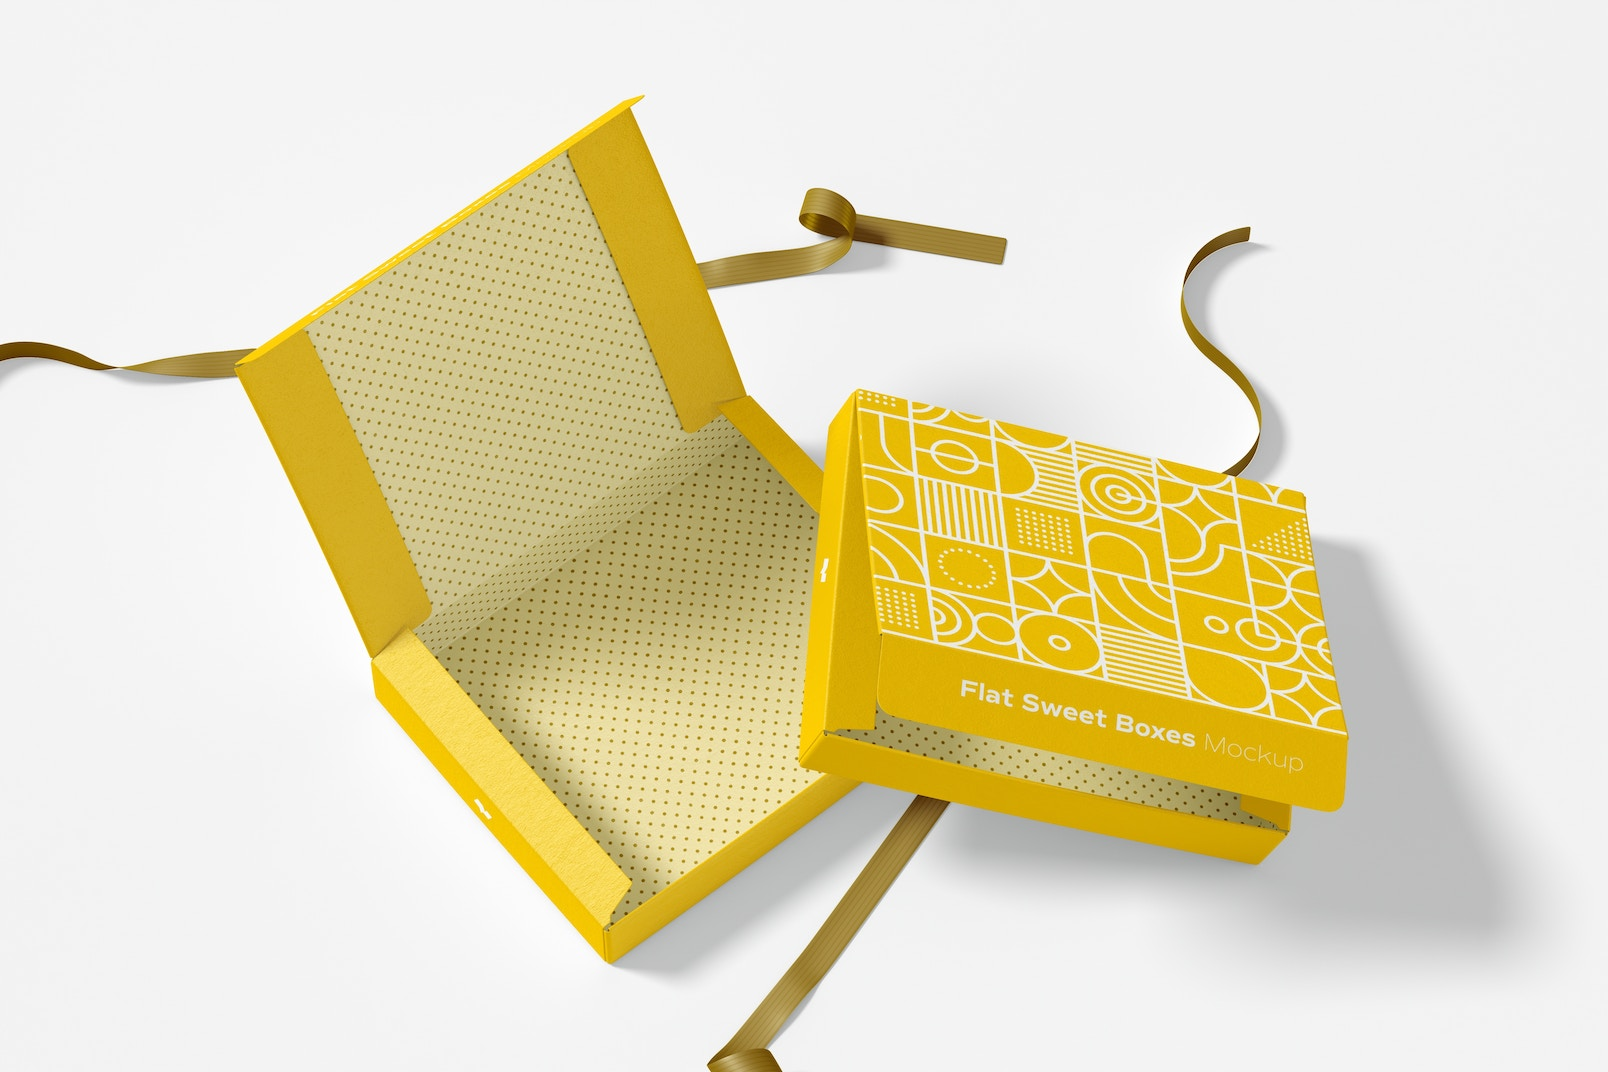 Flat Sweet Boxes with Ribbon Mockup, Opened and Closed